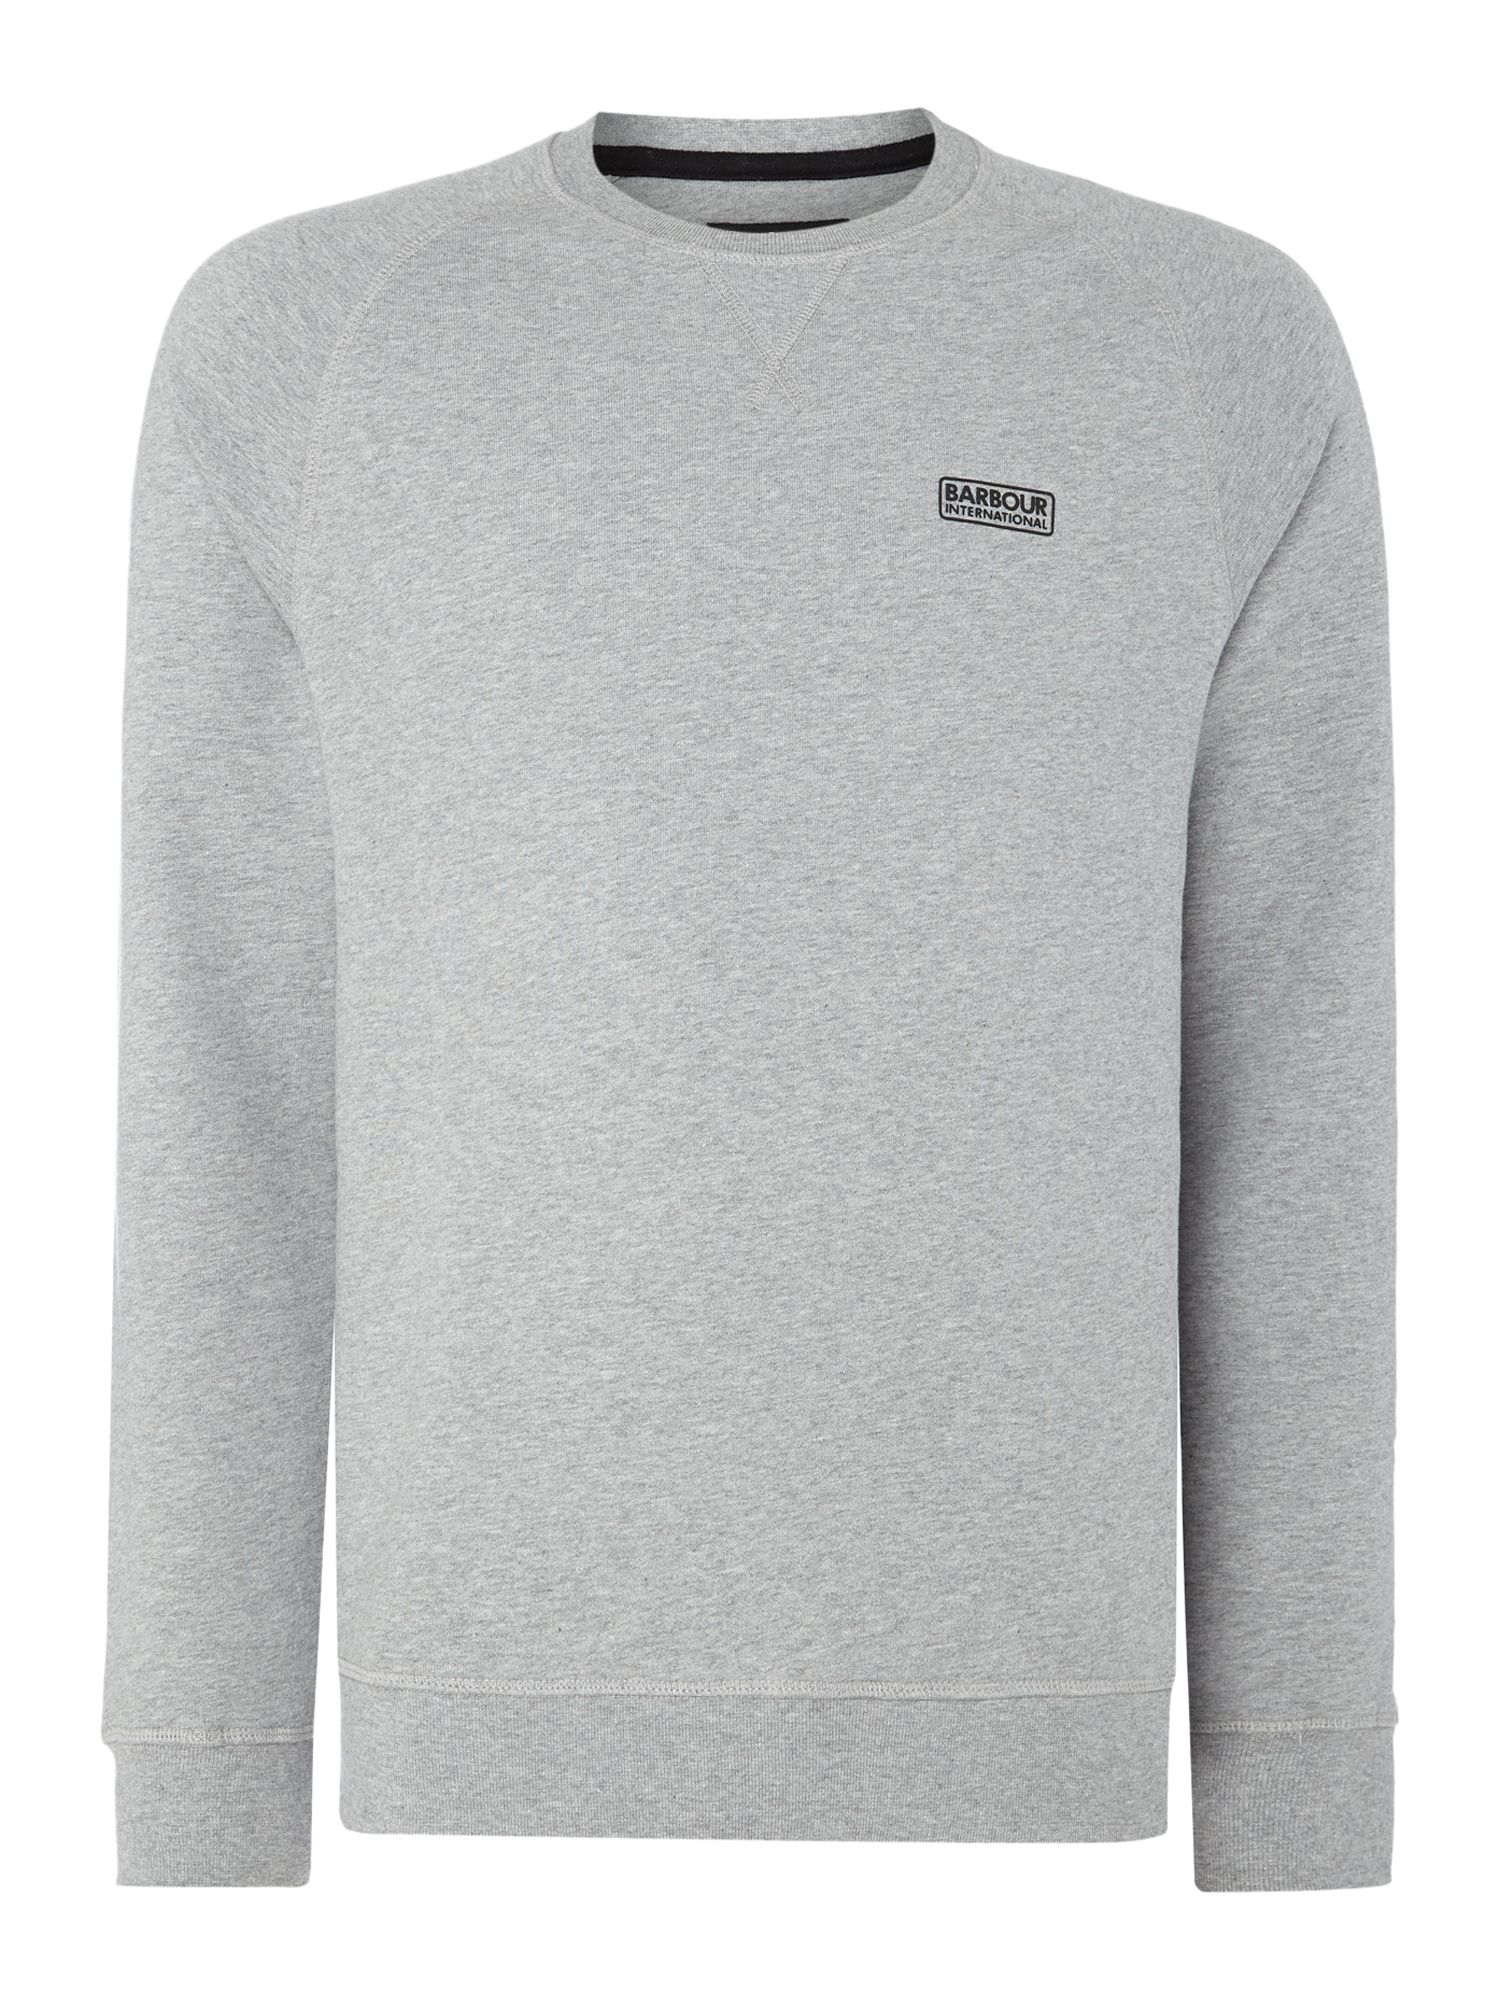 Men's Barbour Logo crew-neck sweatshirt, Grey Marl